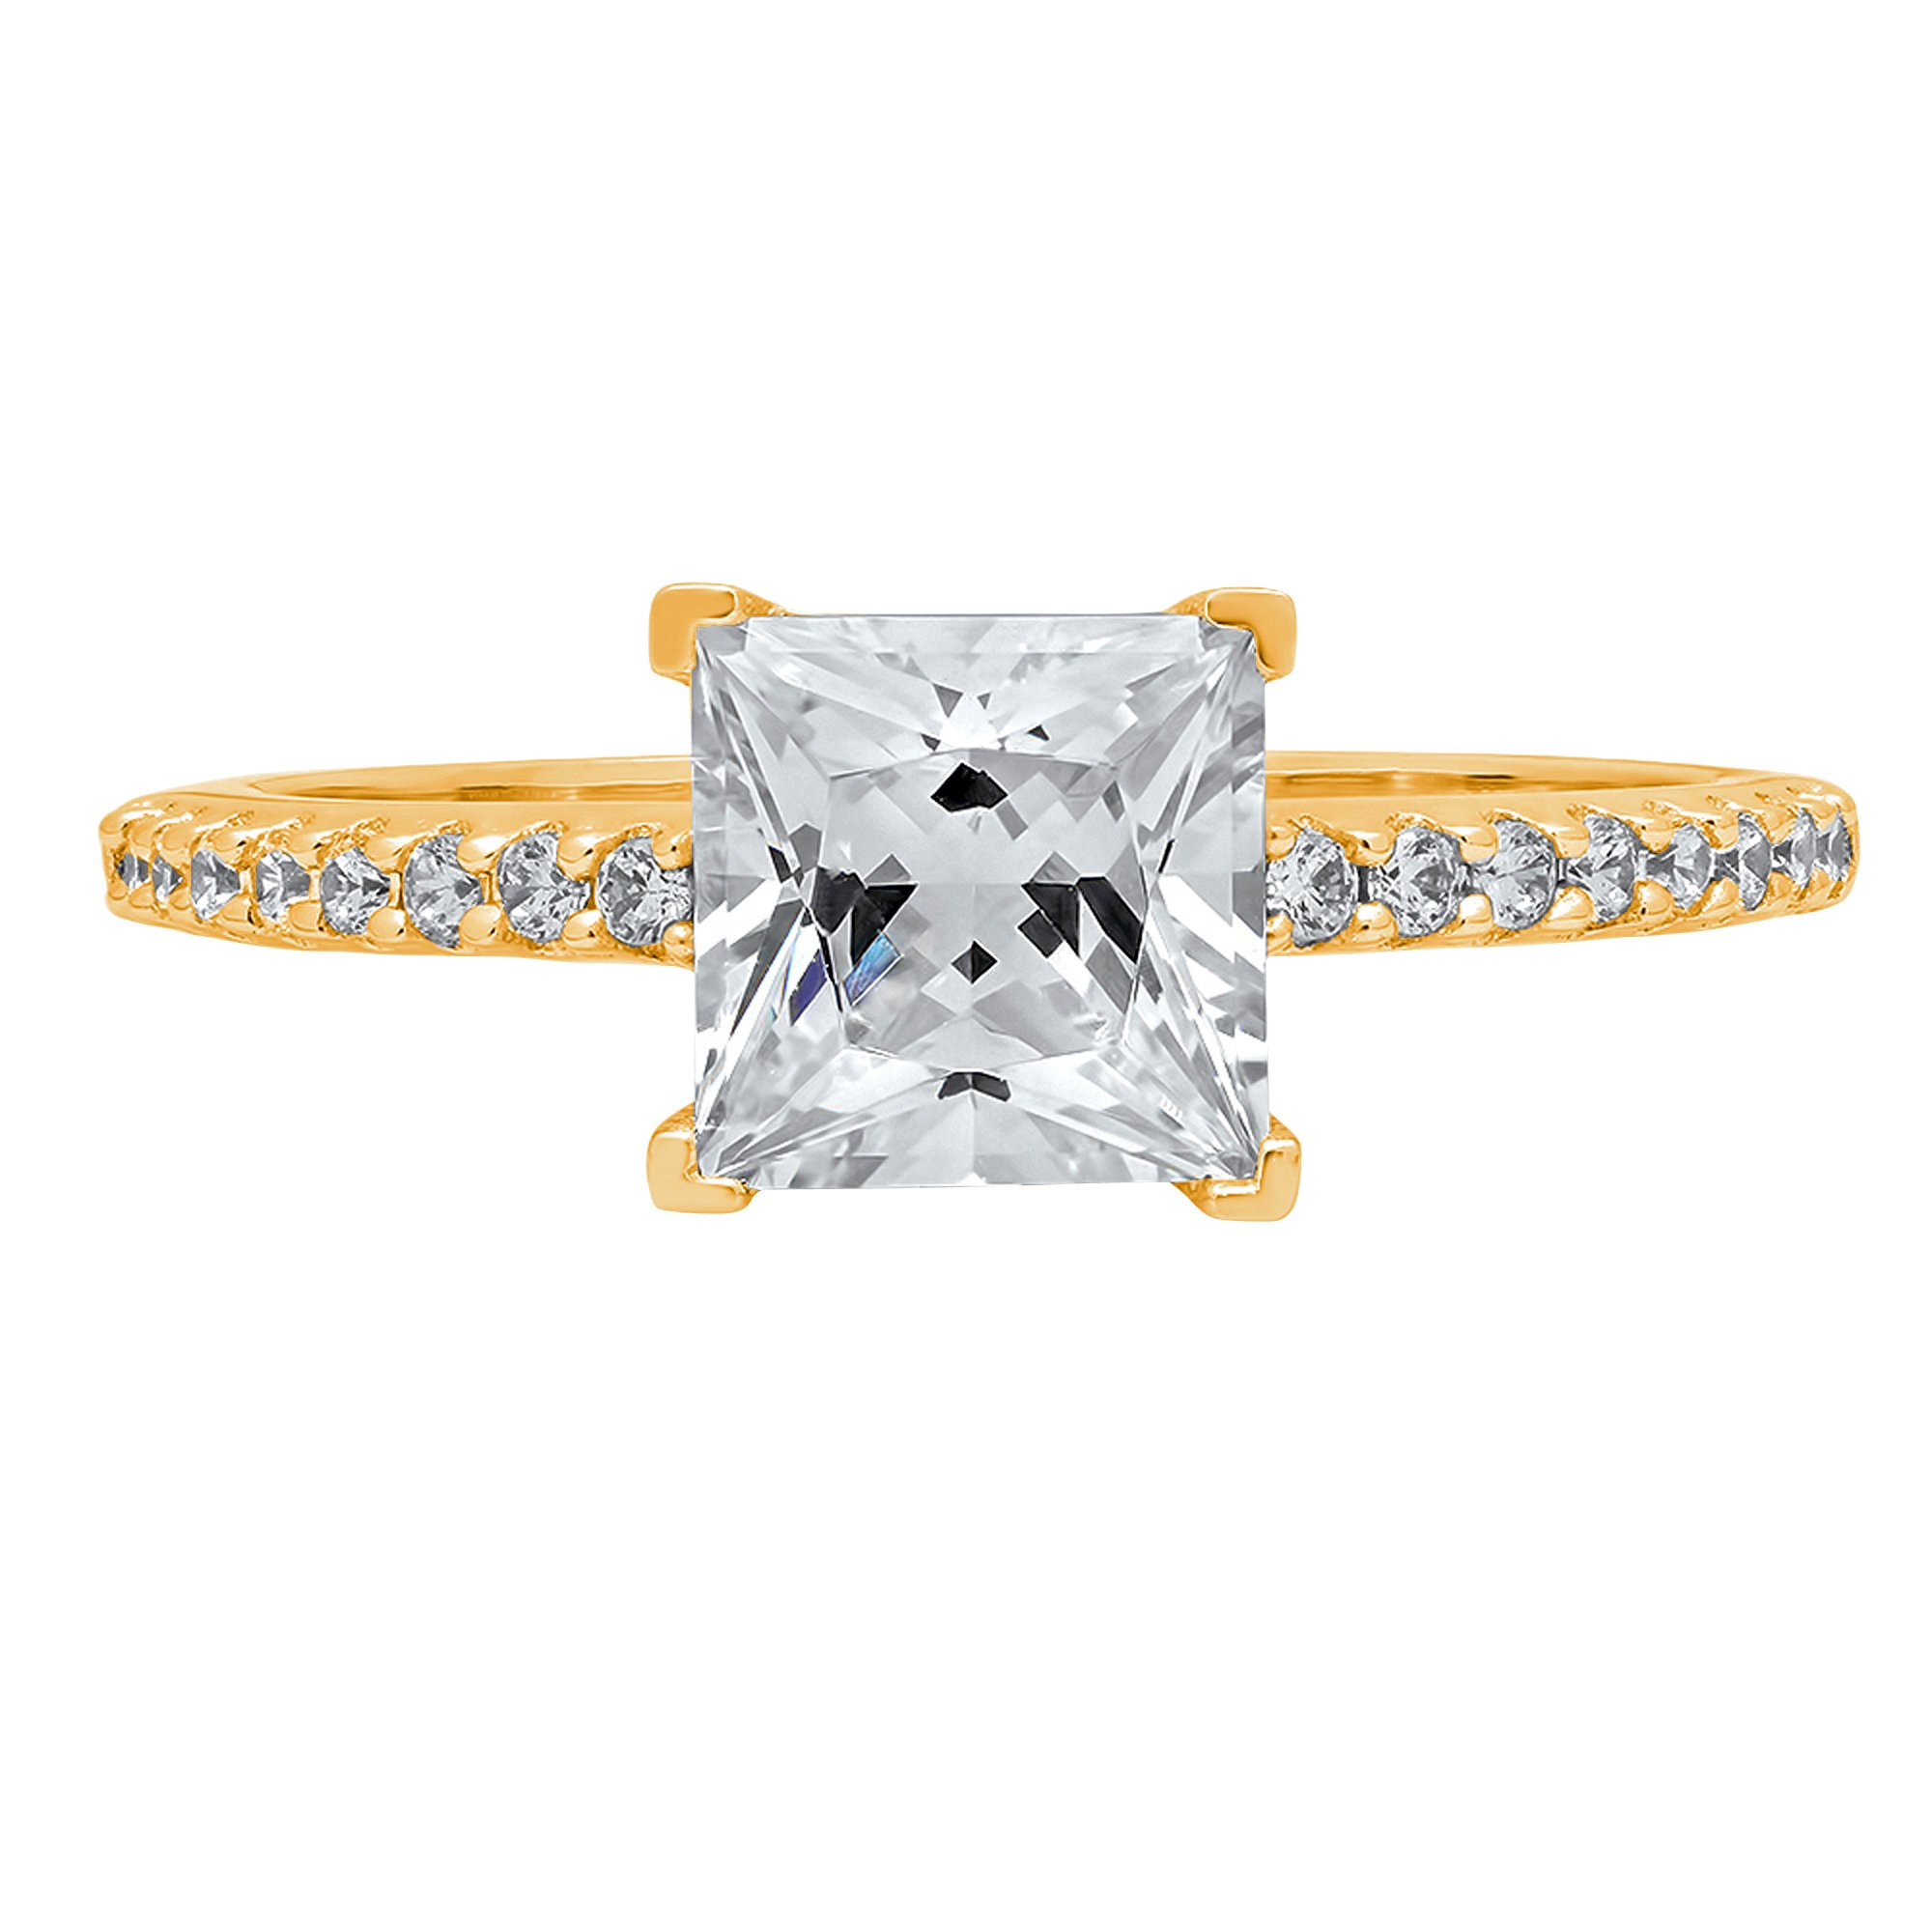 1.56ct Brilliant Princess Cut Accent Solitaire Engagement Anniversary Wedding Bridal Promise Ring in Solid 14k Yellow Gold for Women, 10.25 by Clara Pucci